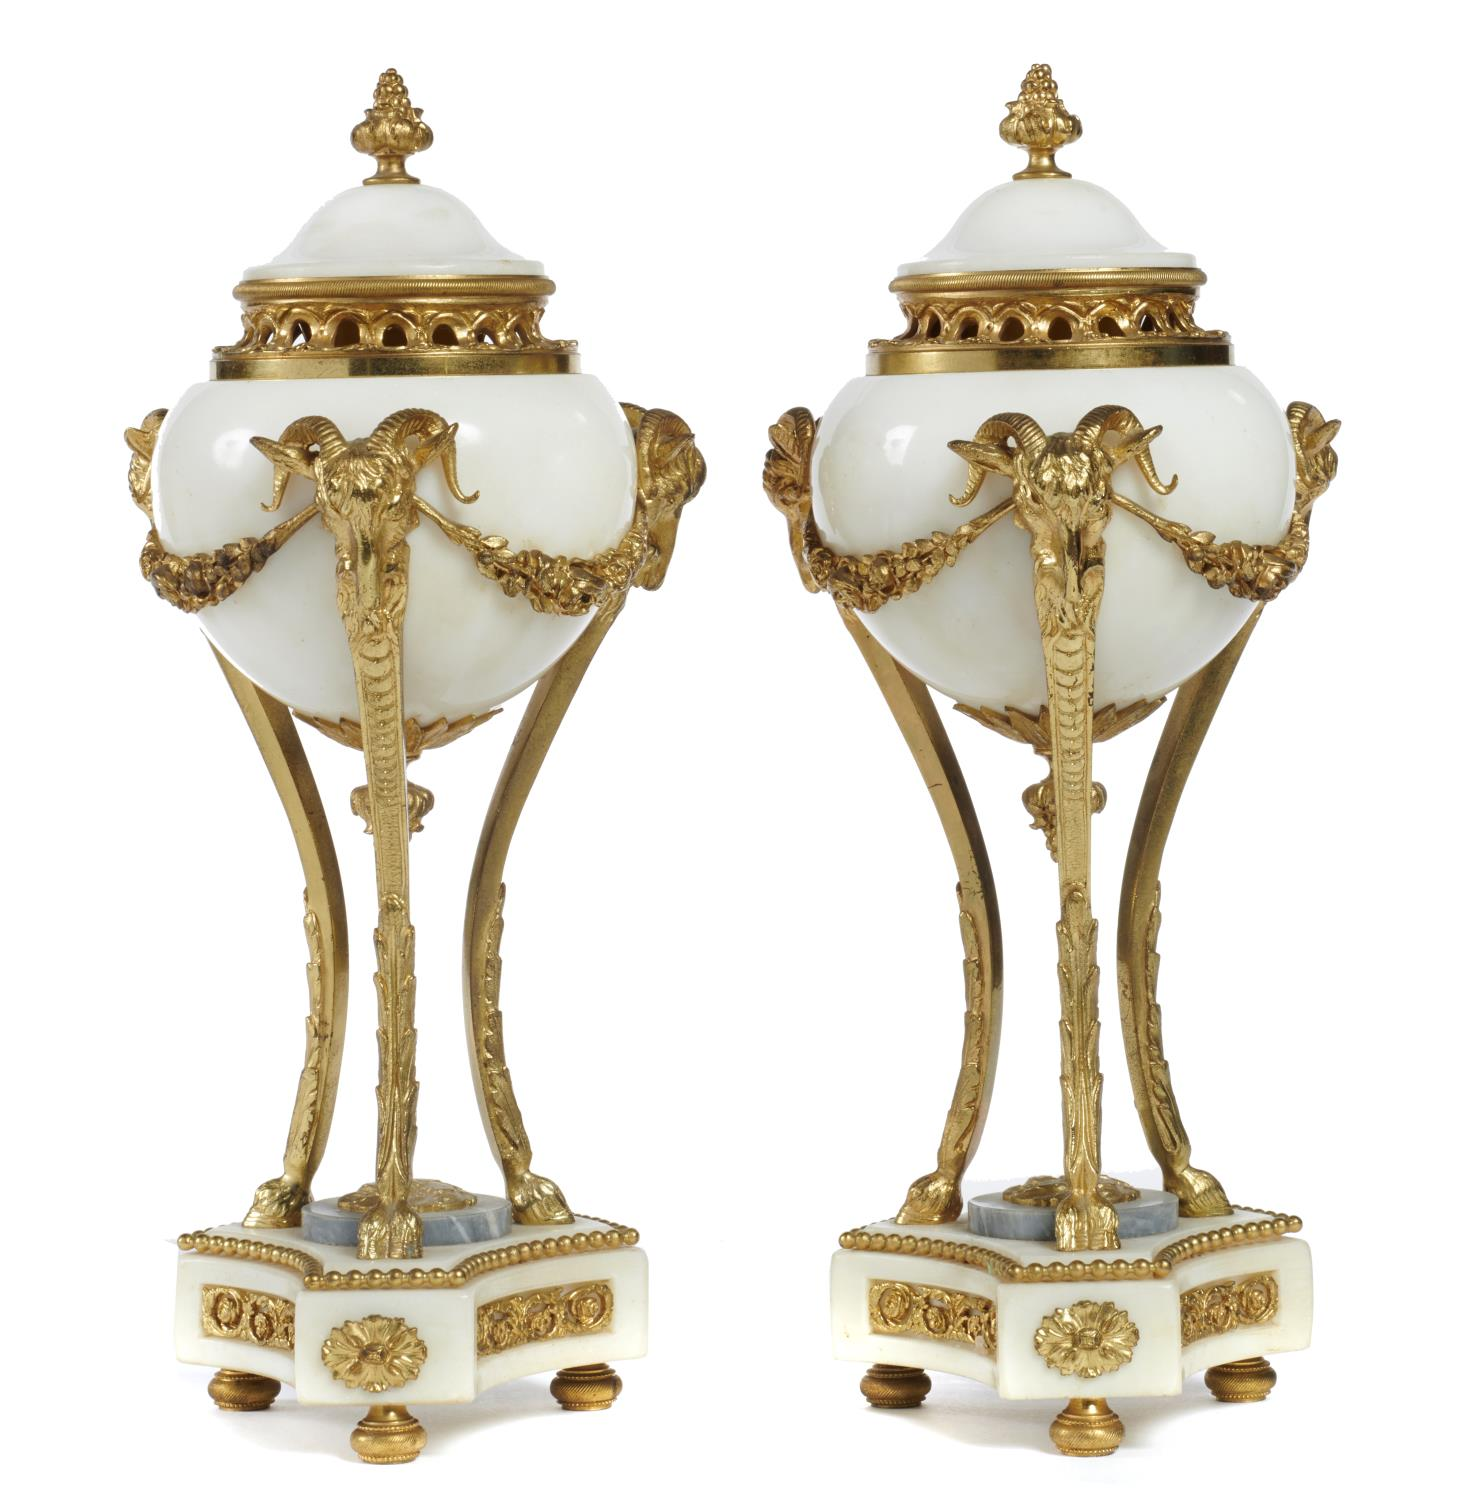 Lot 660 - A PAIR OF FRENCH NEO CLASSICAL STYLE ORMOLU MOUNTED WHITE AND GREY MARBLE PERFUME BURNERS, EARLY